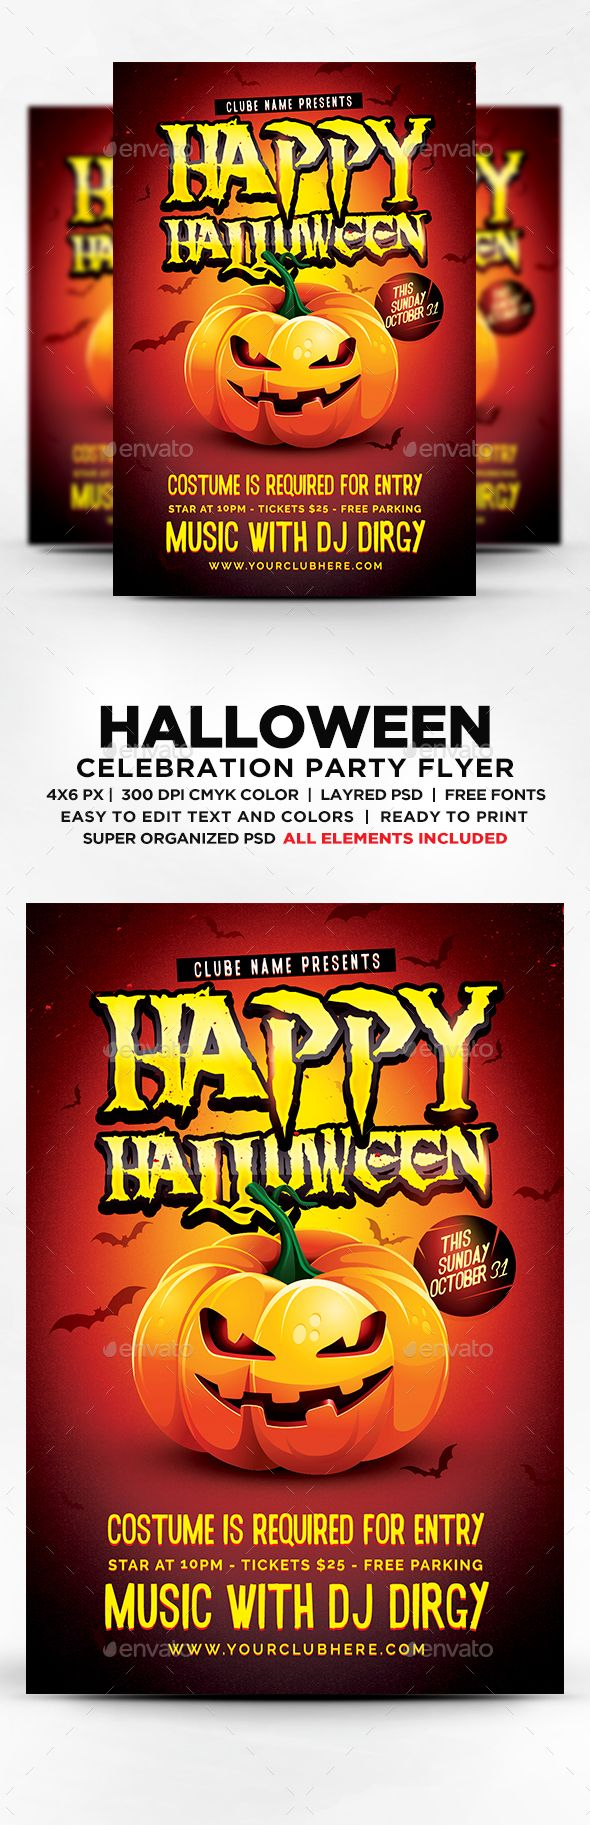 25+ Best Ideas about Halloween Party Flyer on Pinterest ...